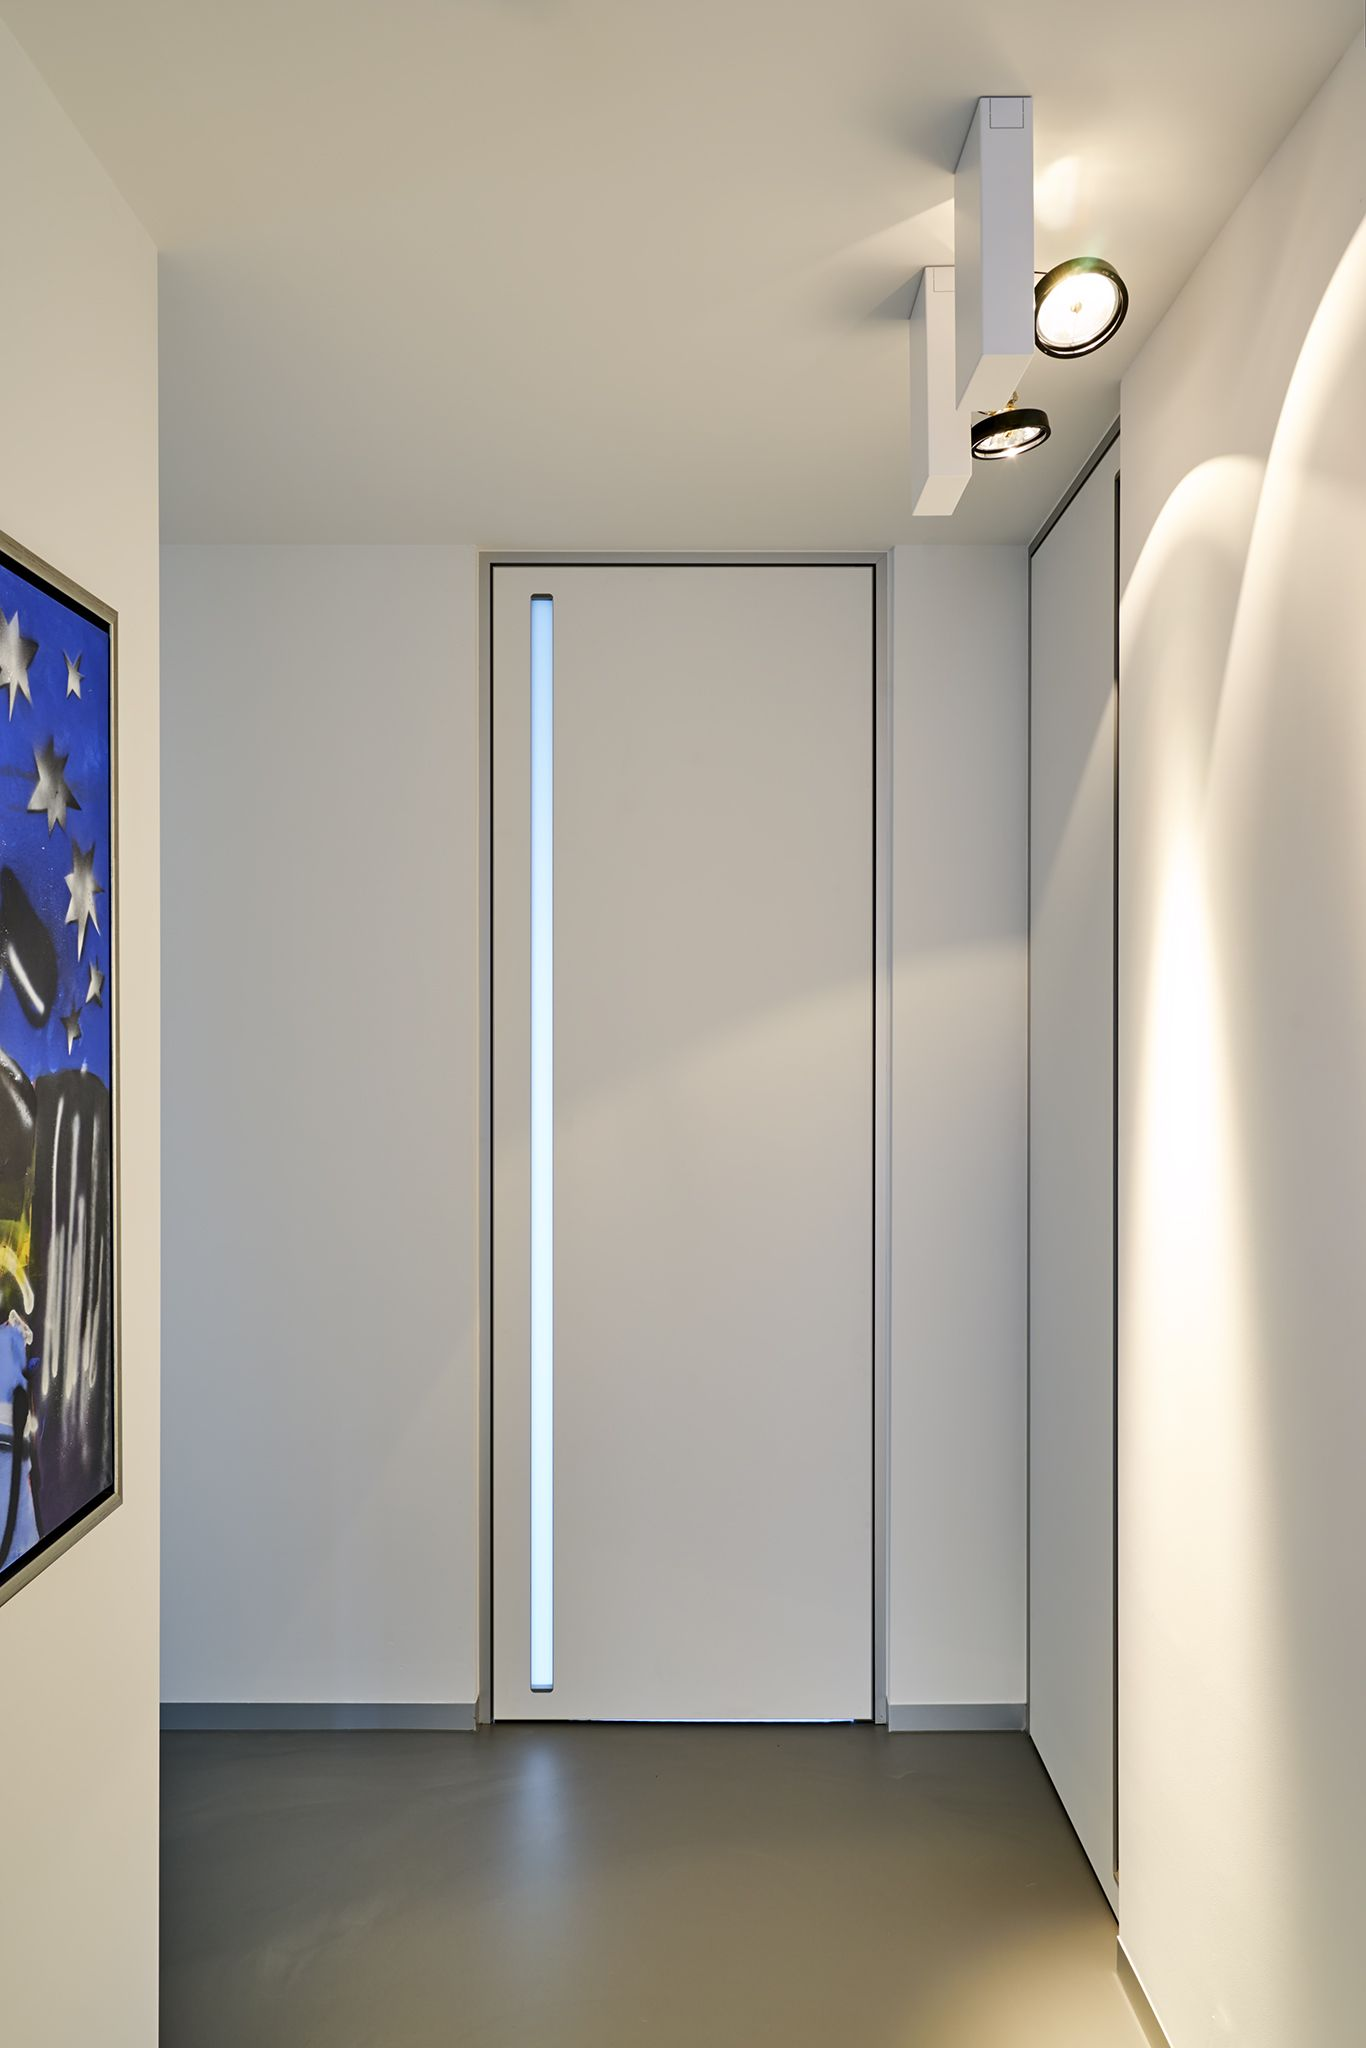 Modern internal door from floor to ceiling with a builtin